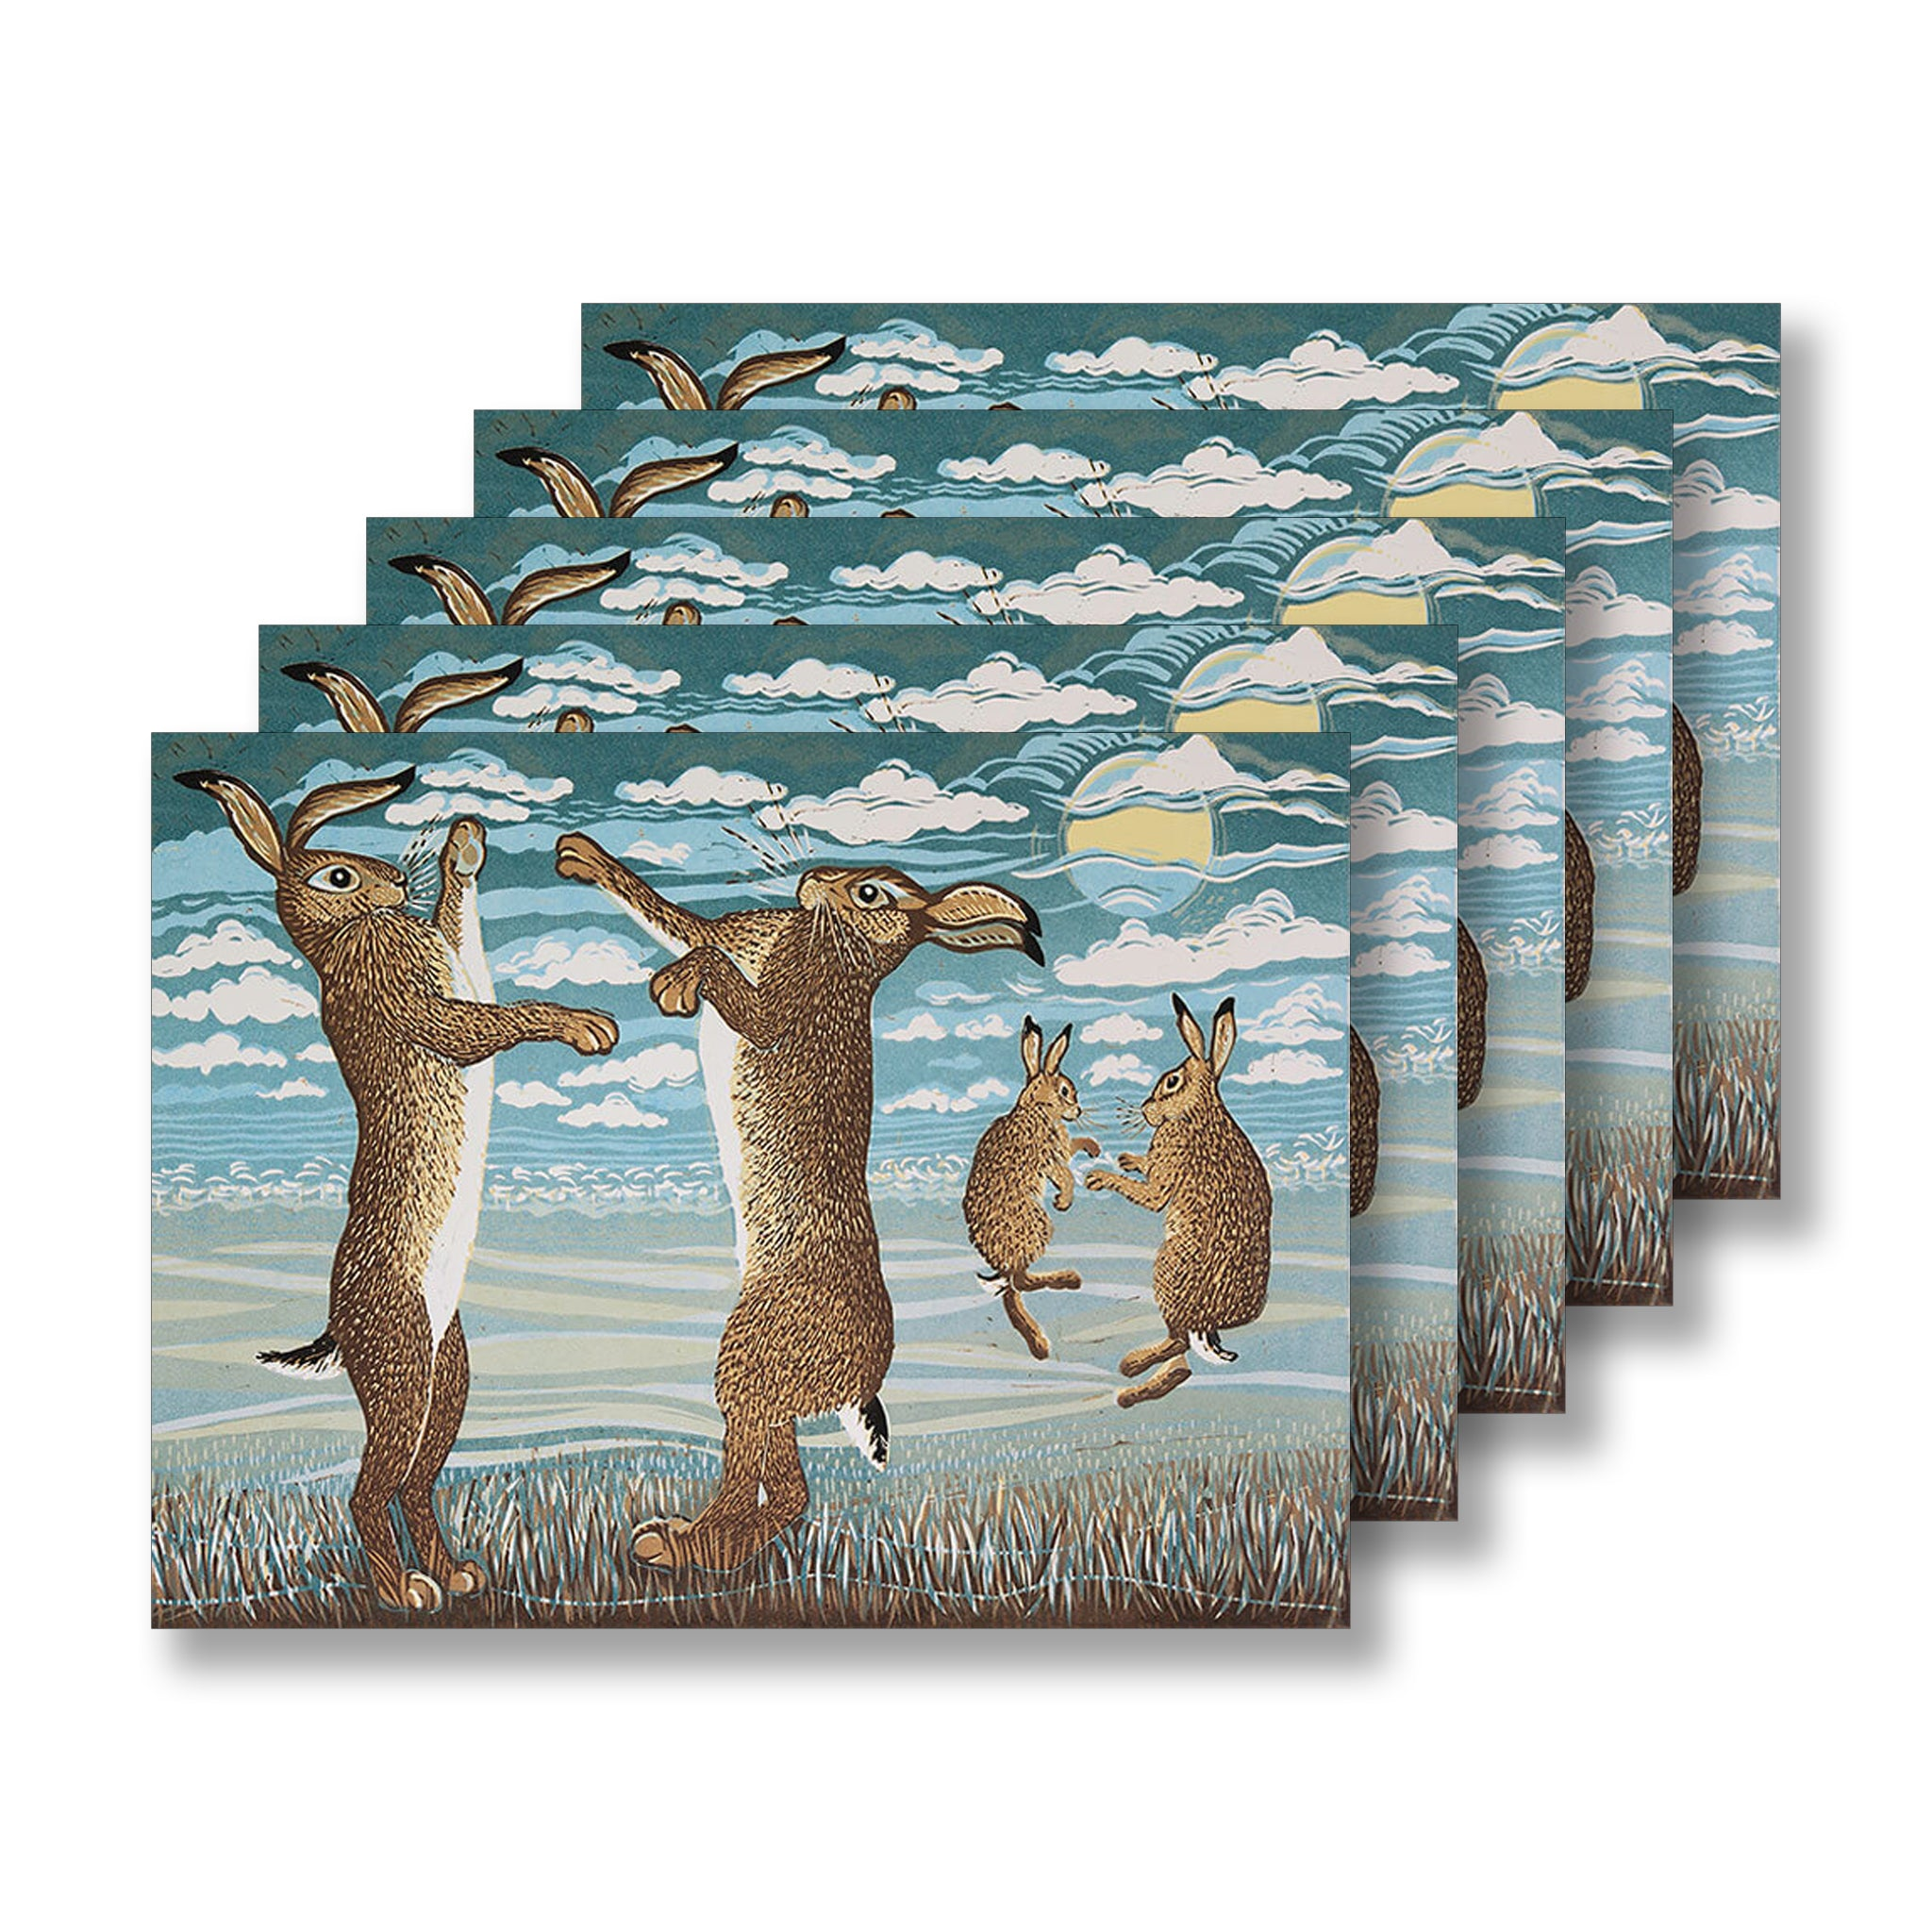 March Hares by Linda Richardson